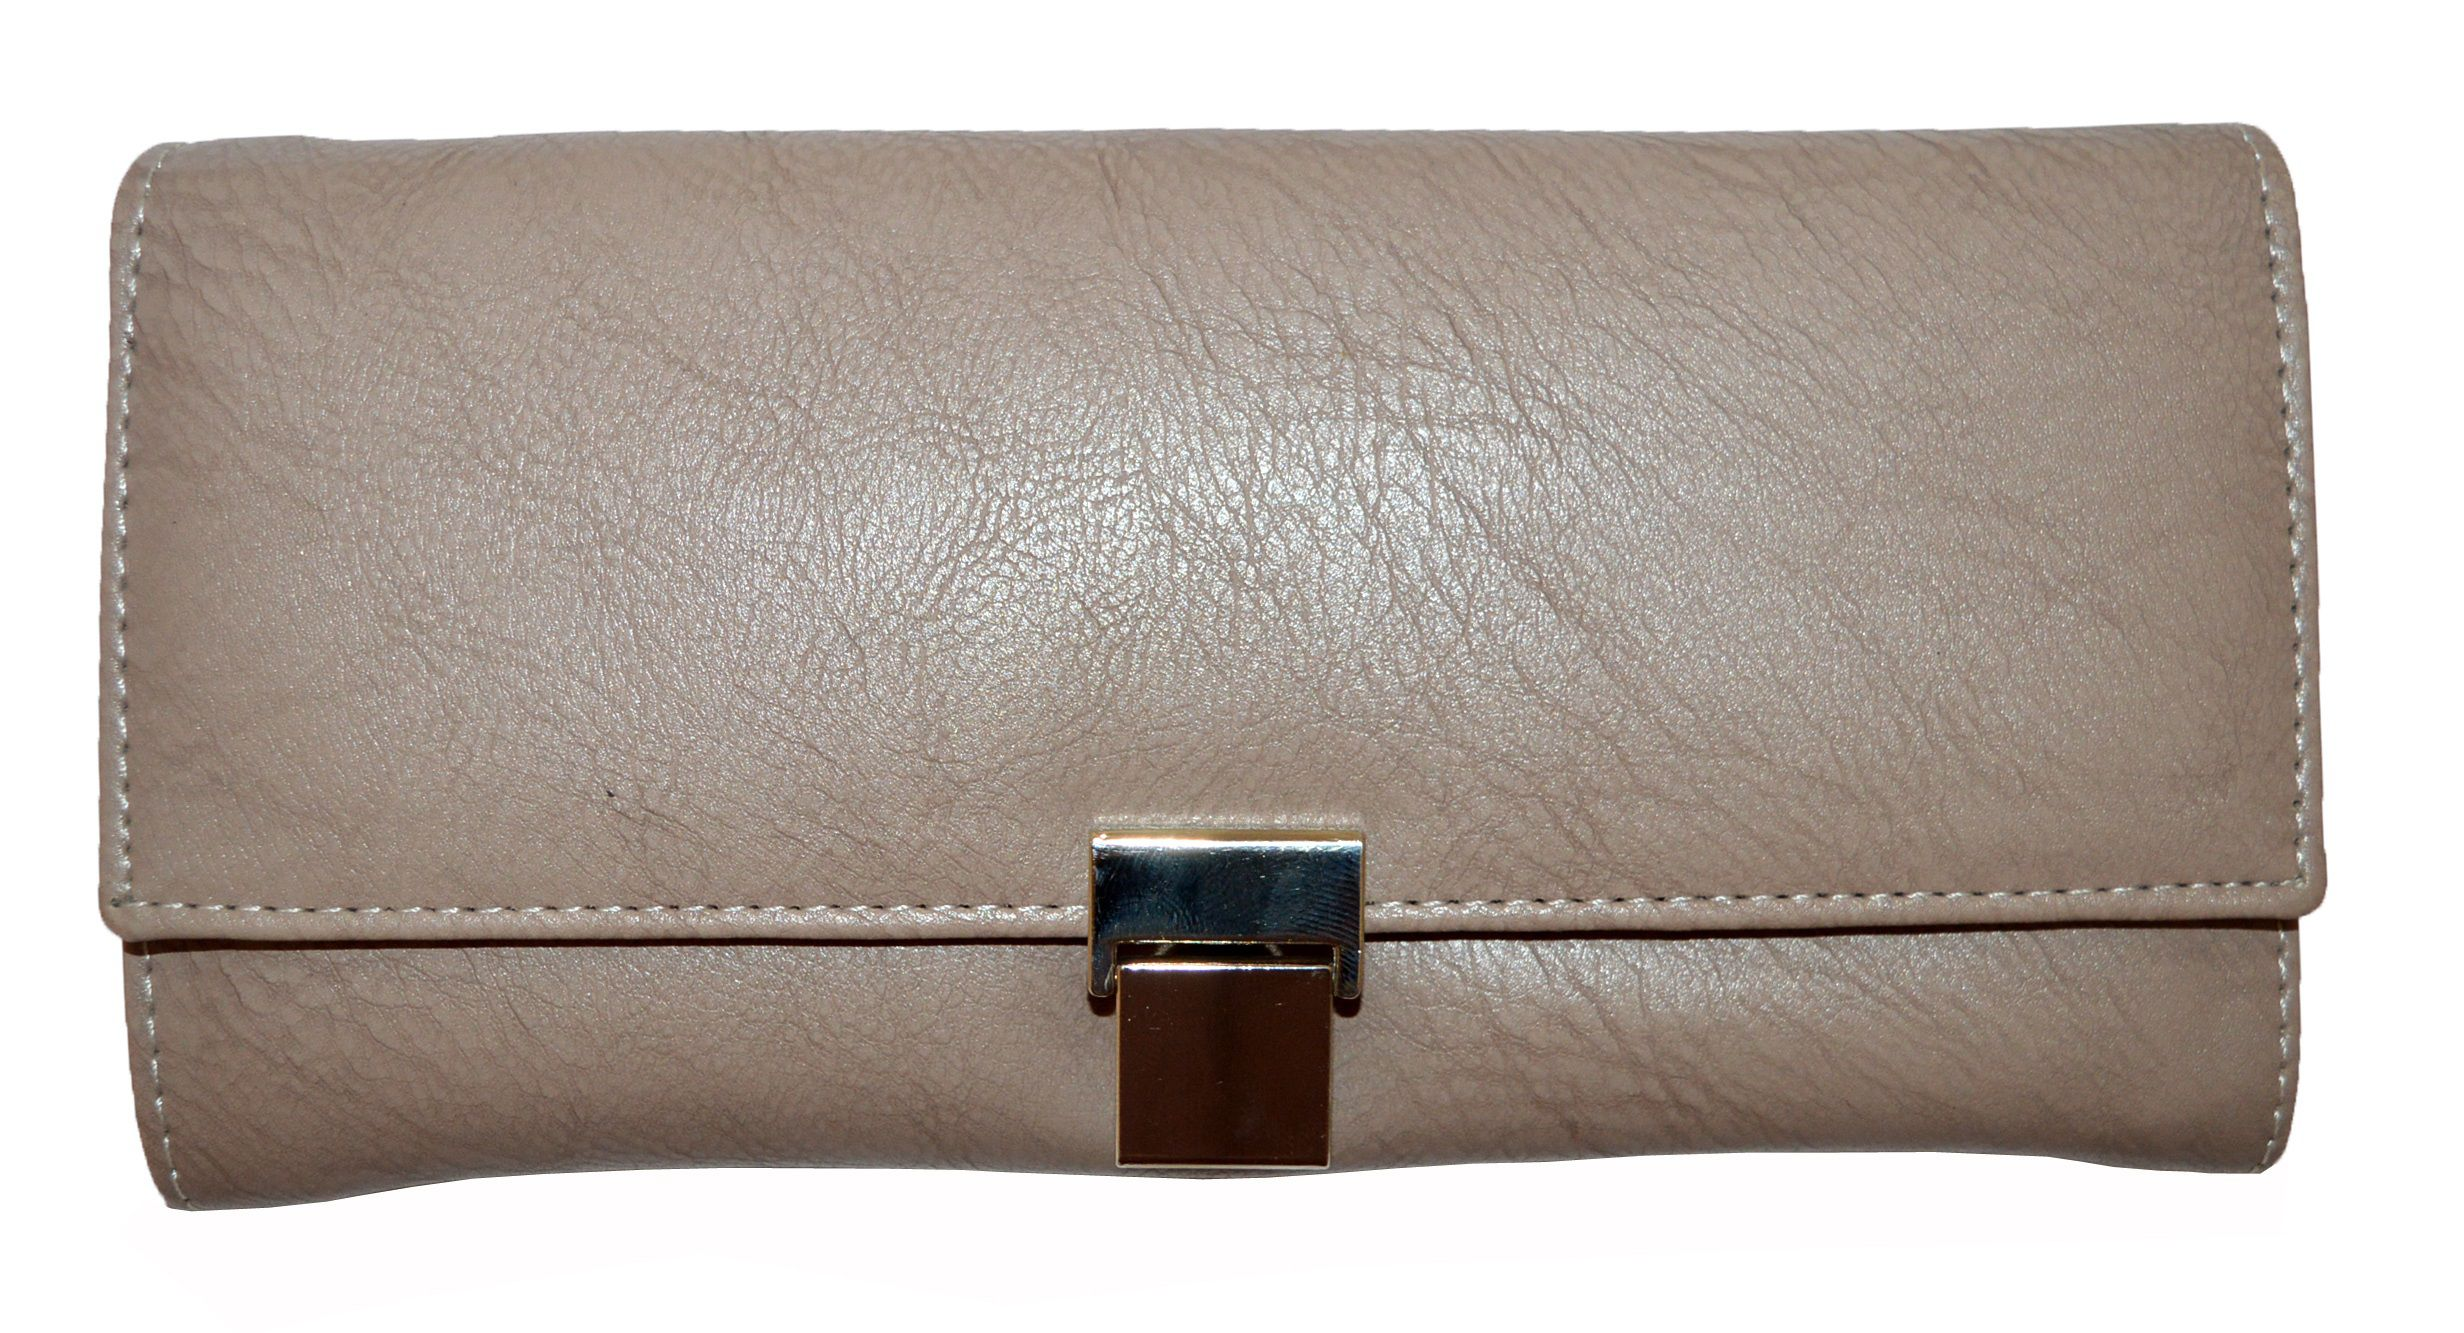 Fashion Fanda Beige Faux Leather Box Clutch